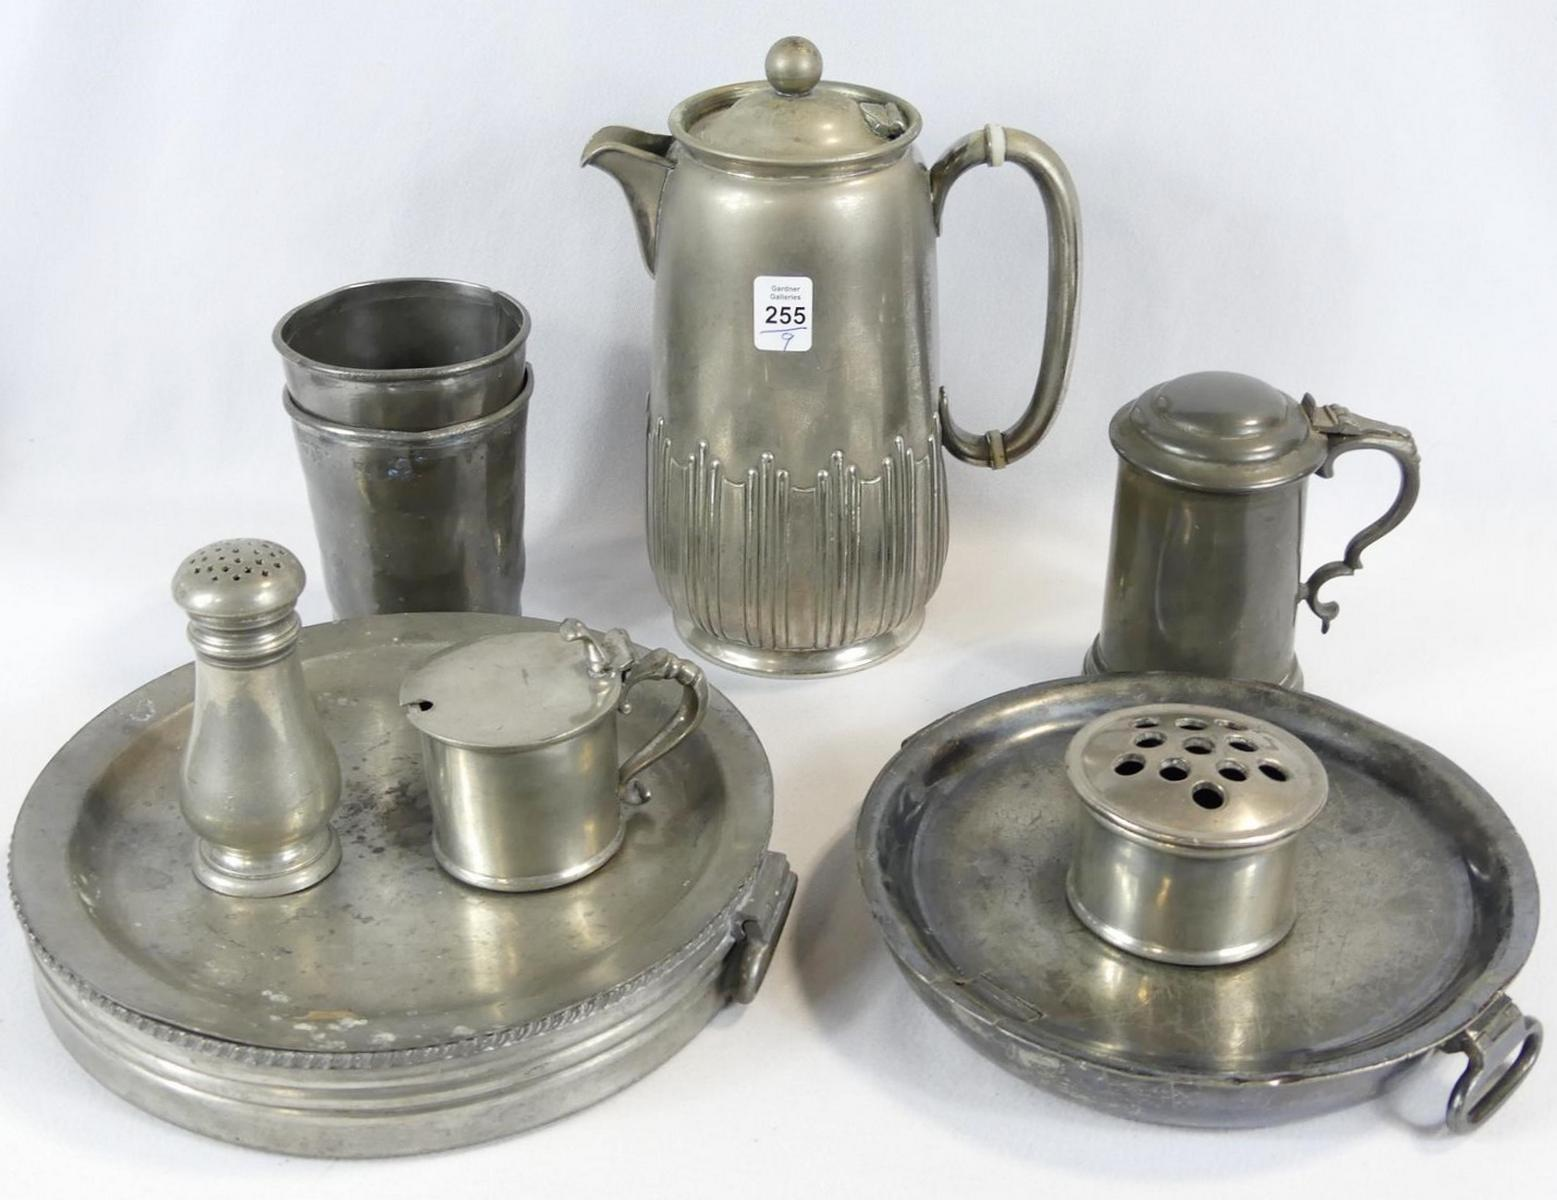 JAMES DIXON AND SONS PEWTER